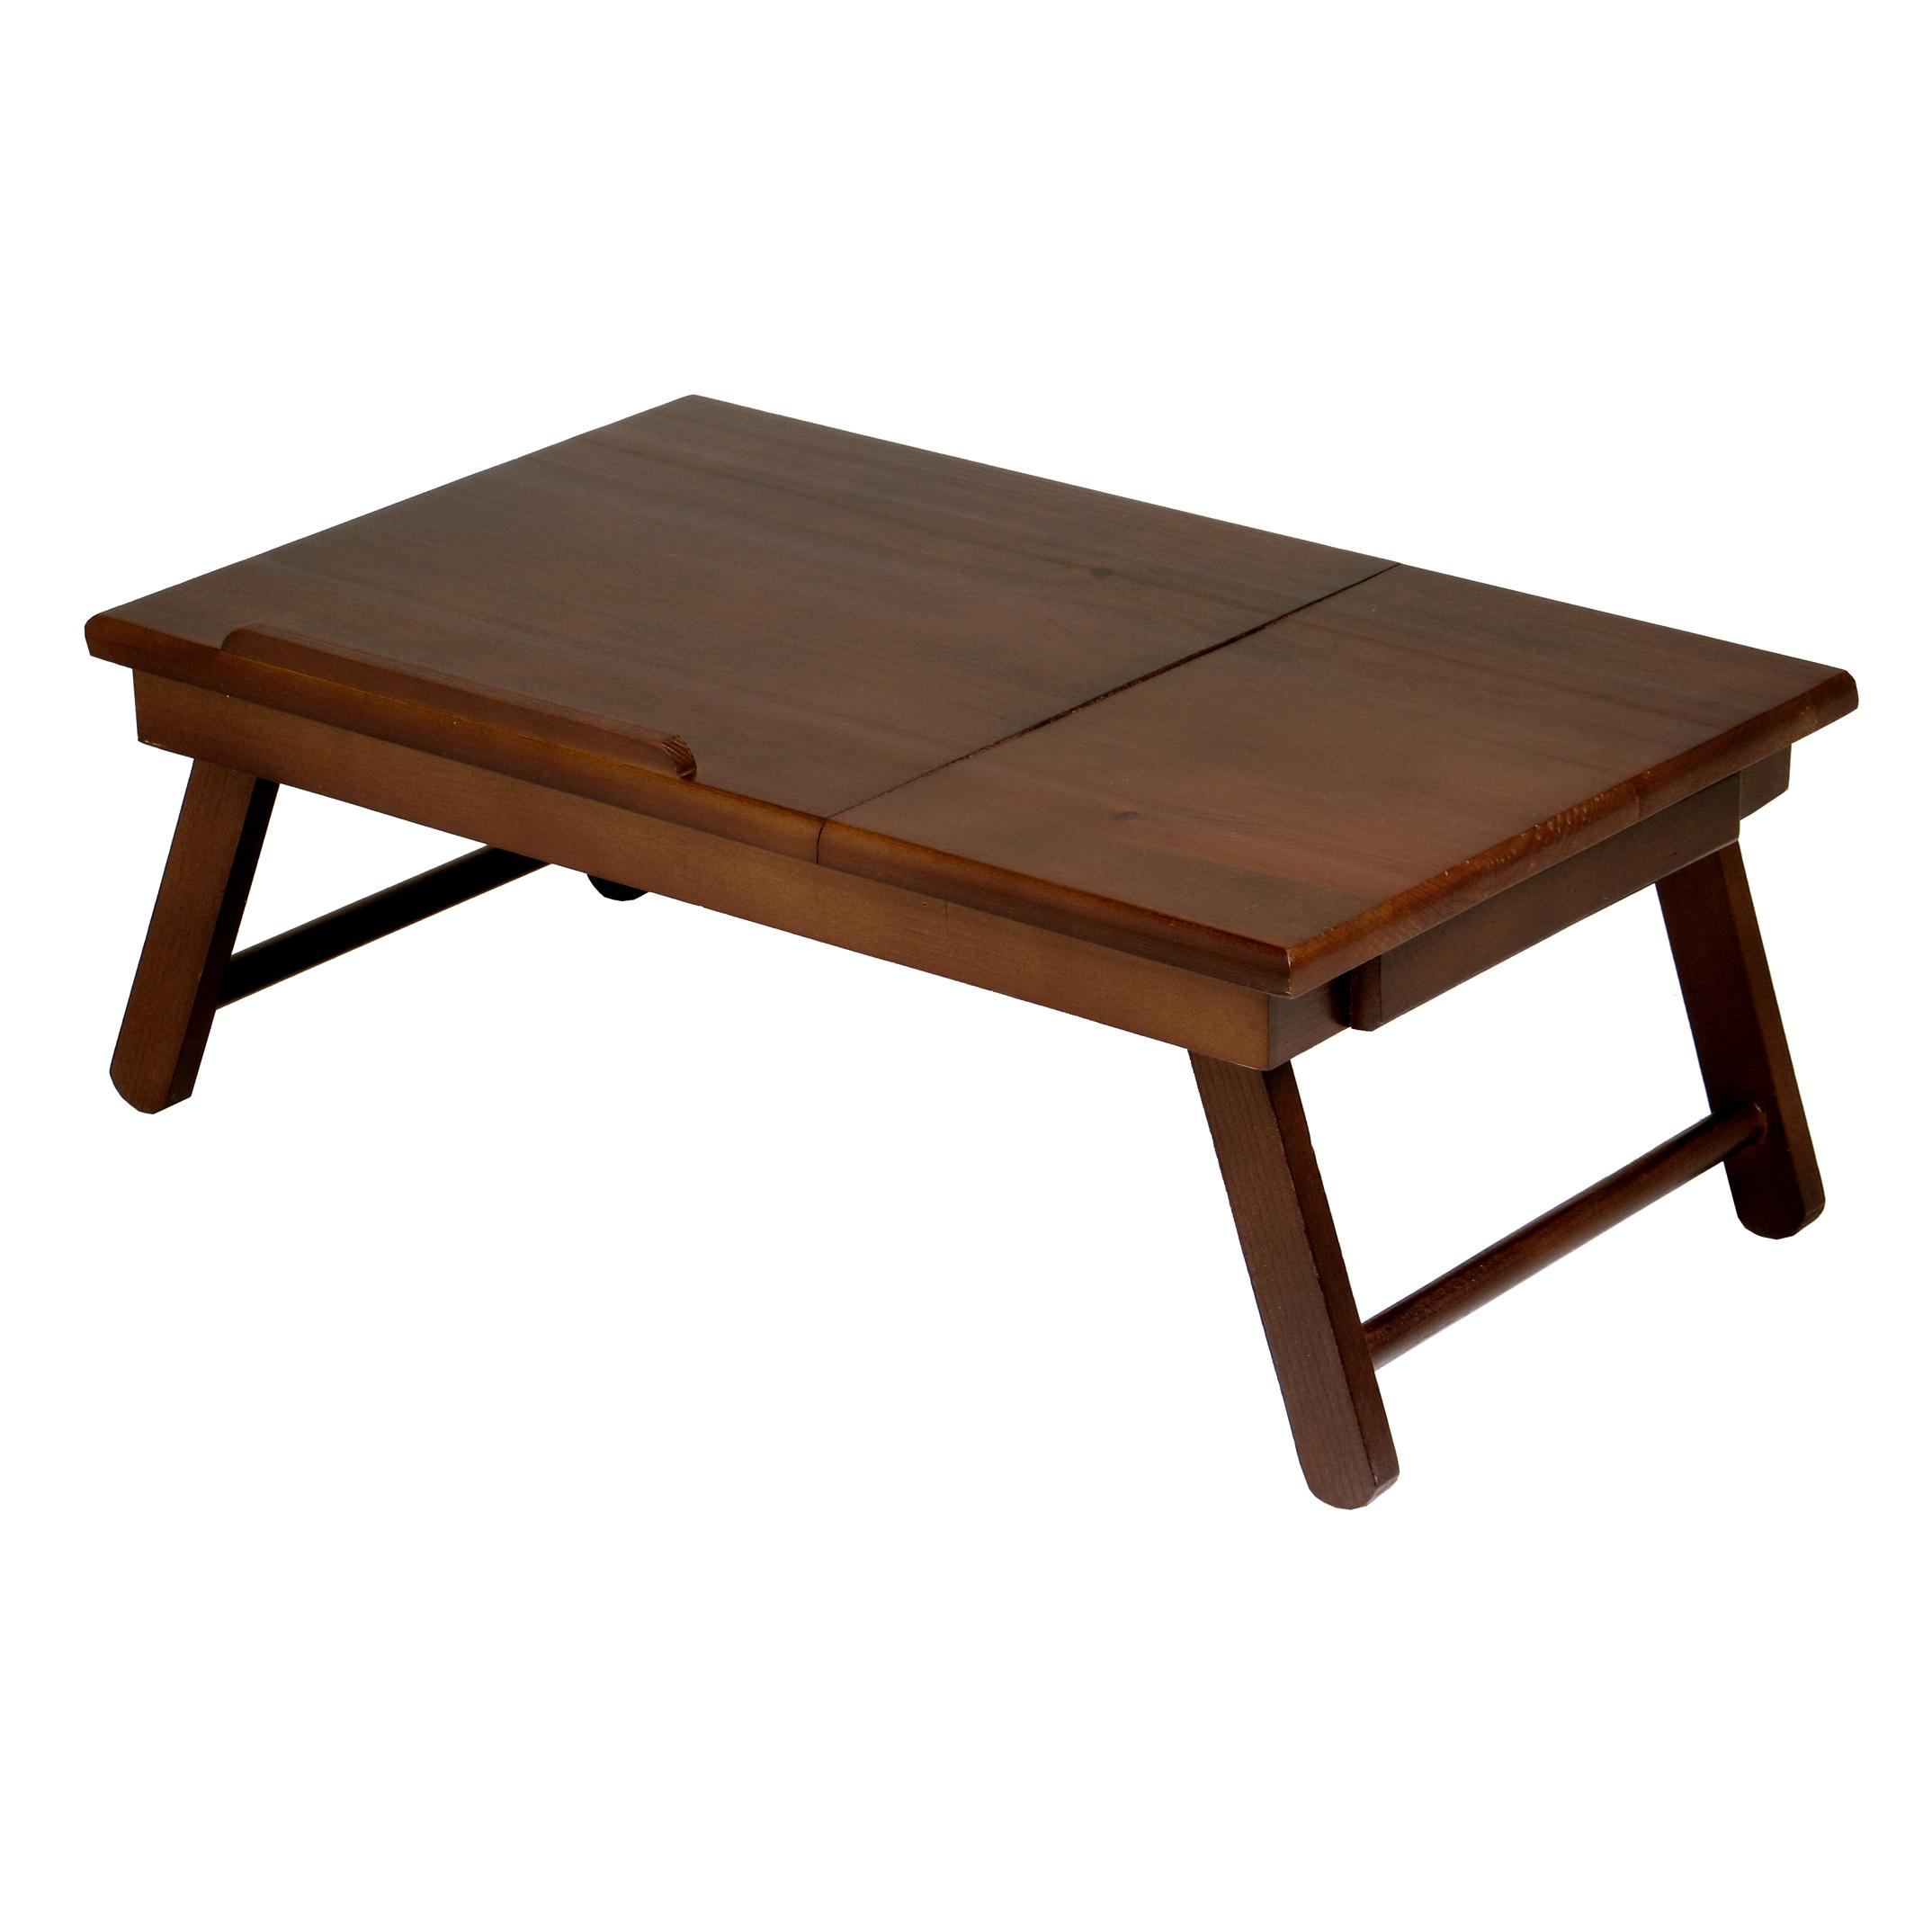 laptop rakuten notebook sch top desk tray table folding food product bed haotian wood foldable shop haotiangroup lap